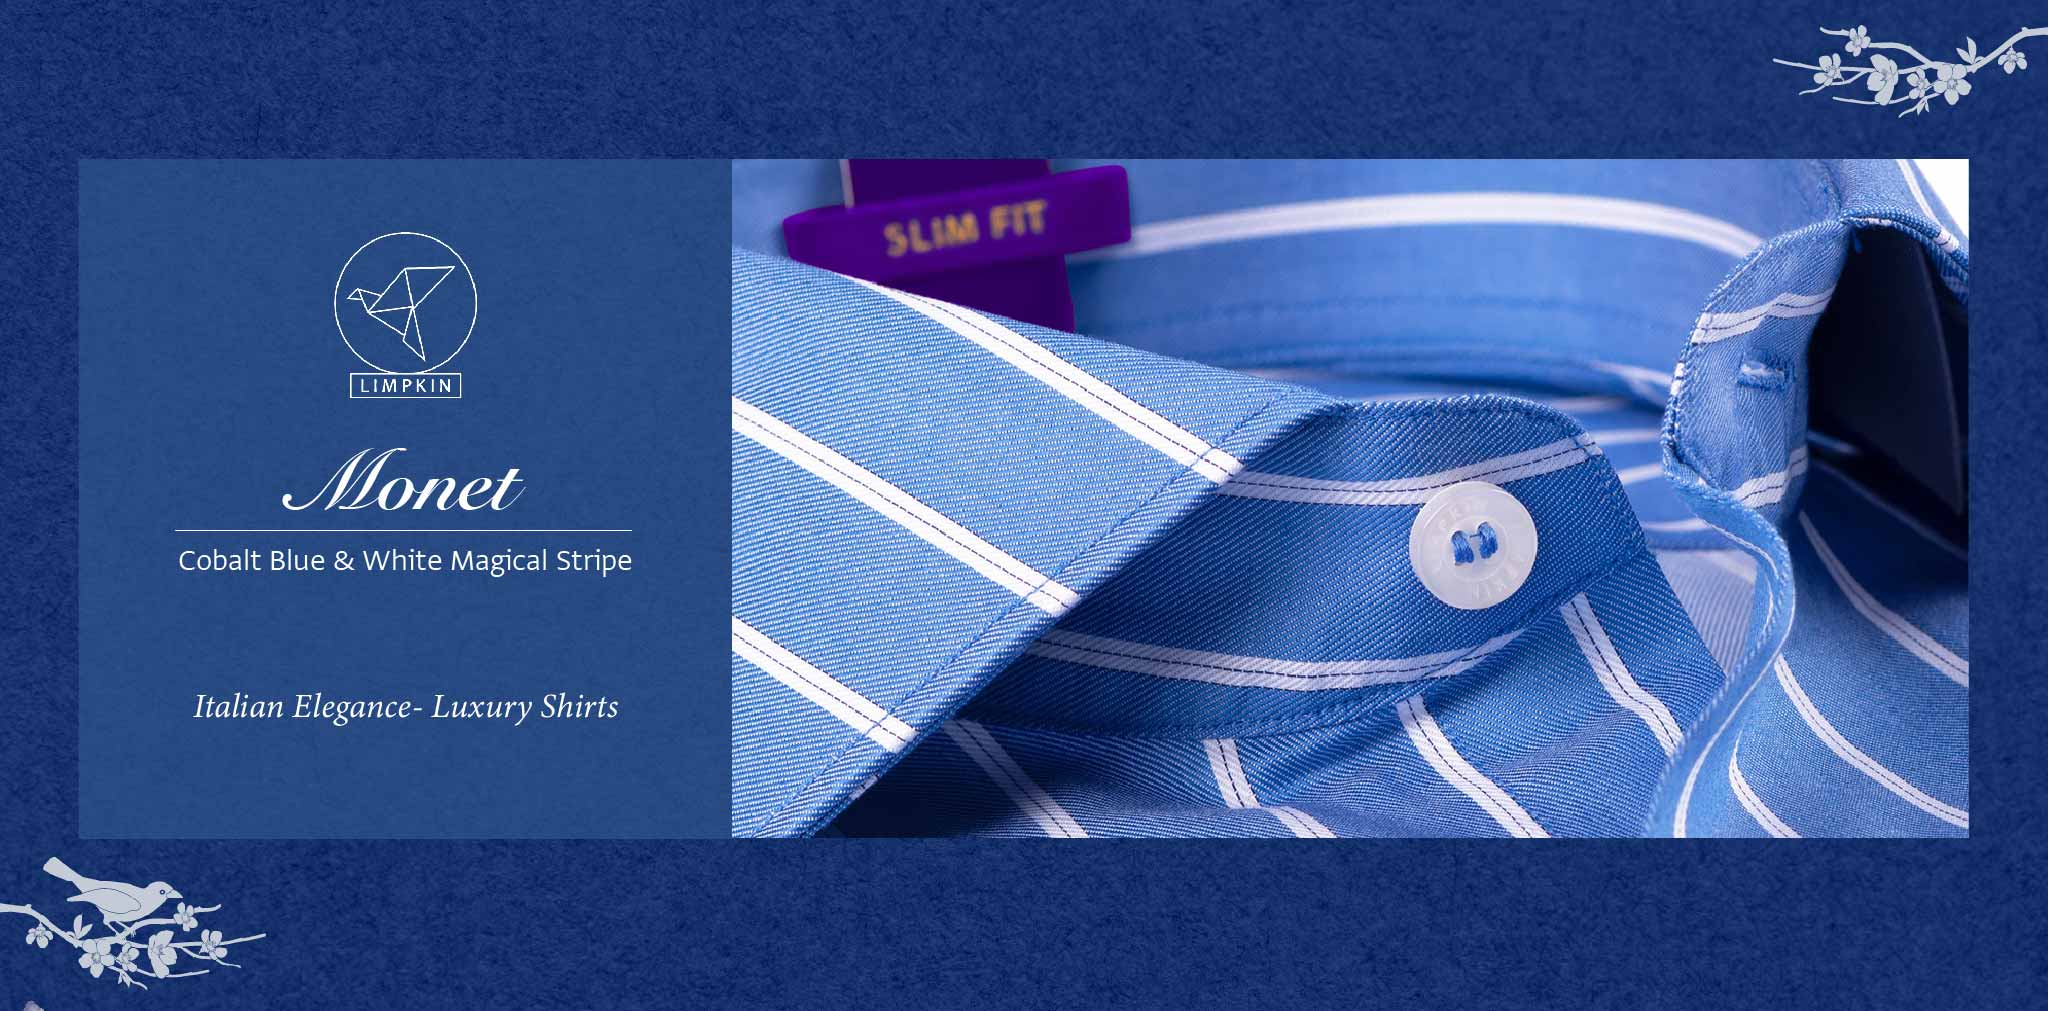 Monet- Cobalt Blue & White Magical Stripe- 2 Ply Pure Egyptian Giza Cotton- Delivery from 26th Jan - Banner